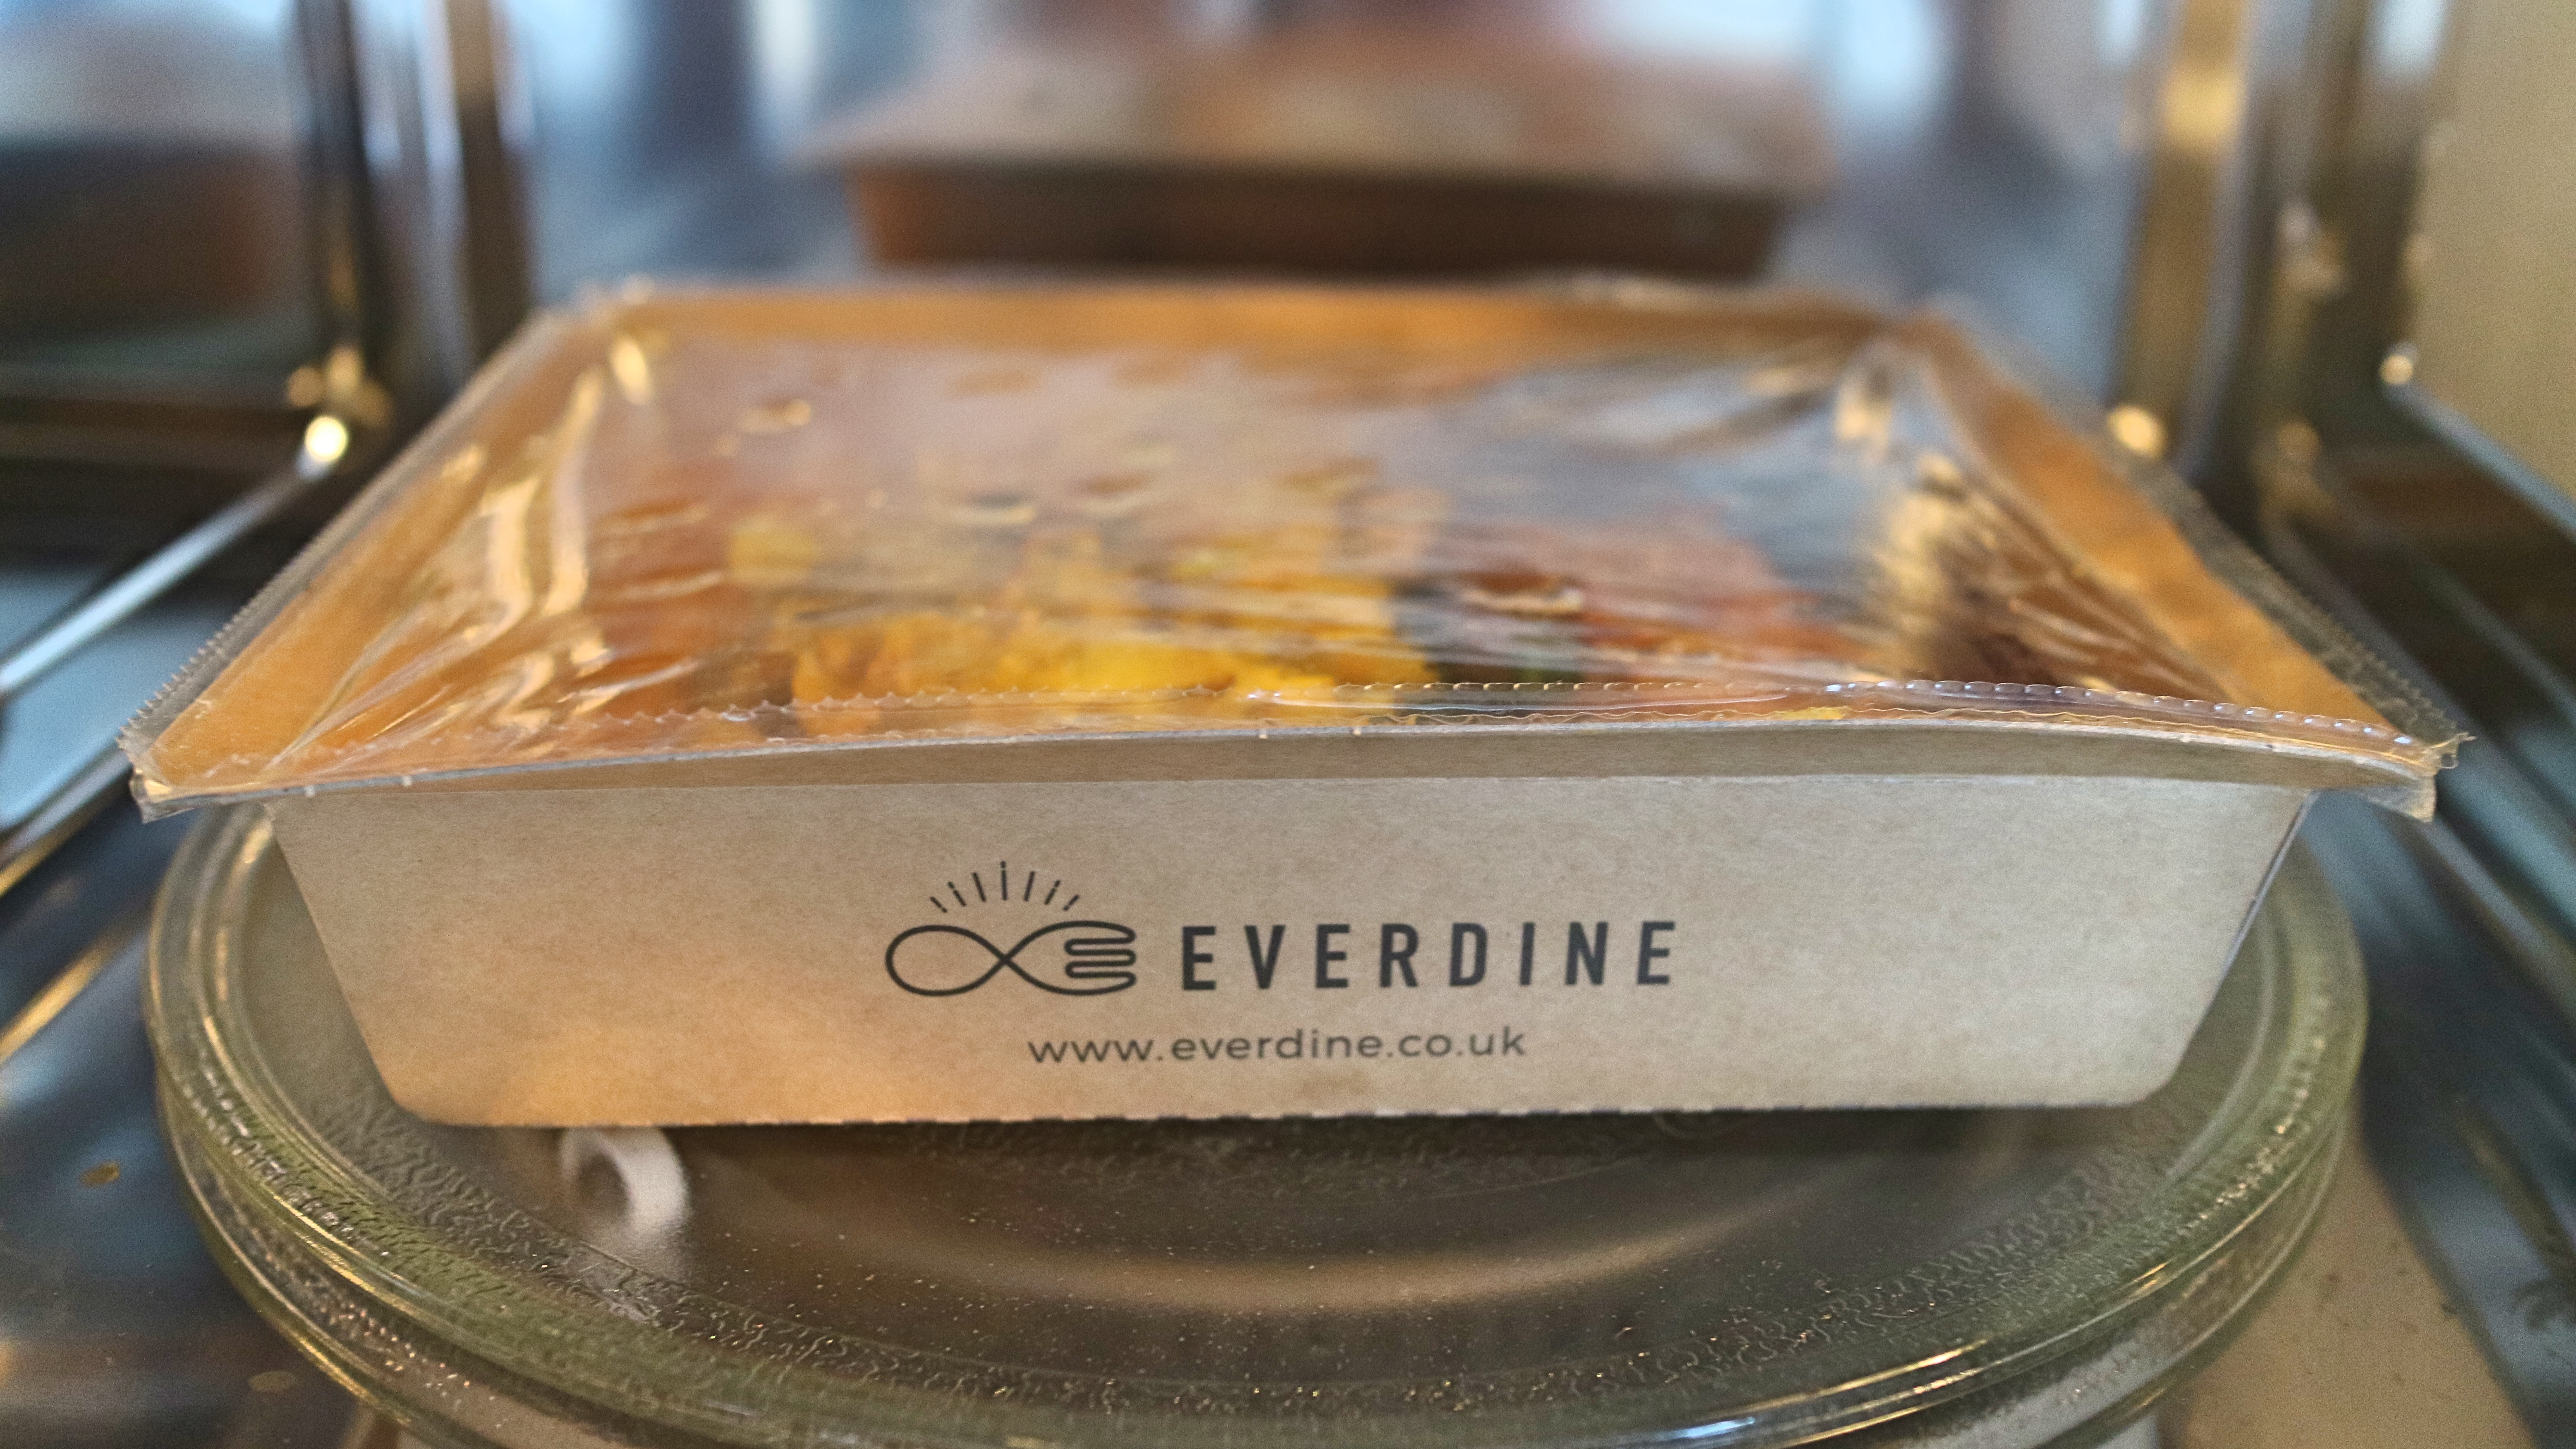 Microwaving meals from Everdine